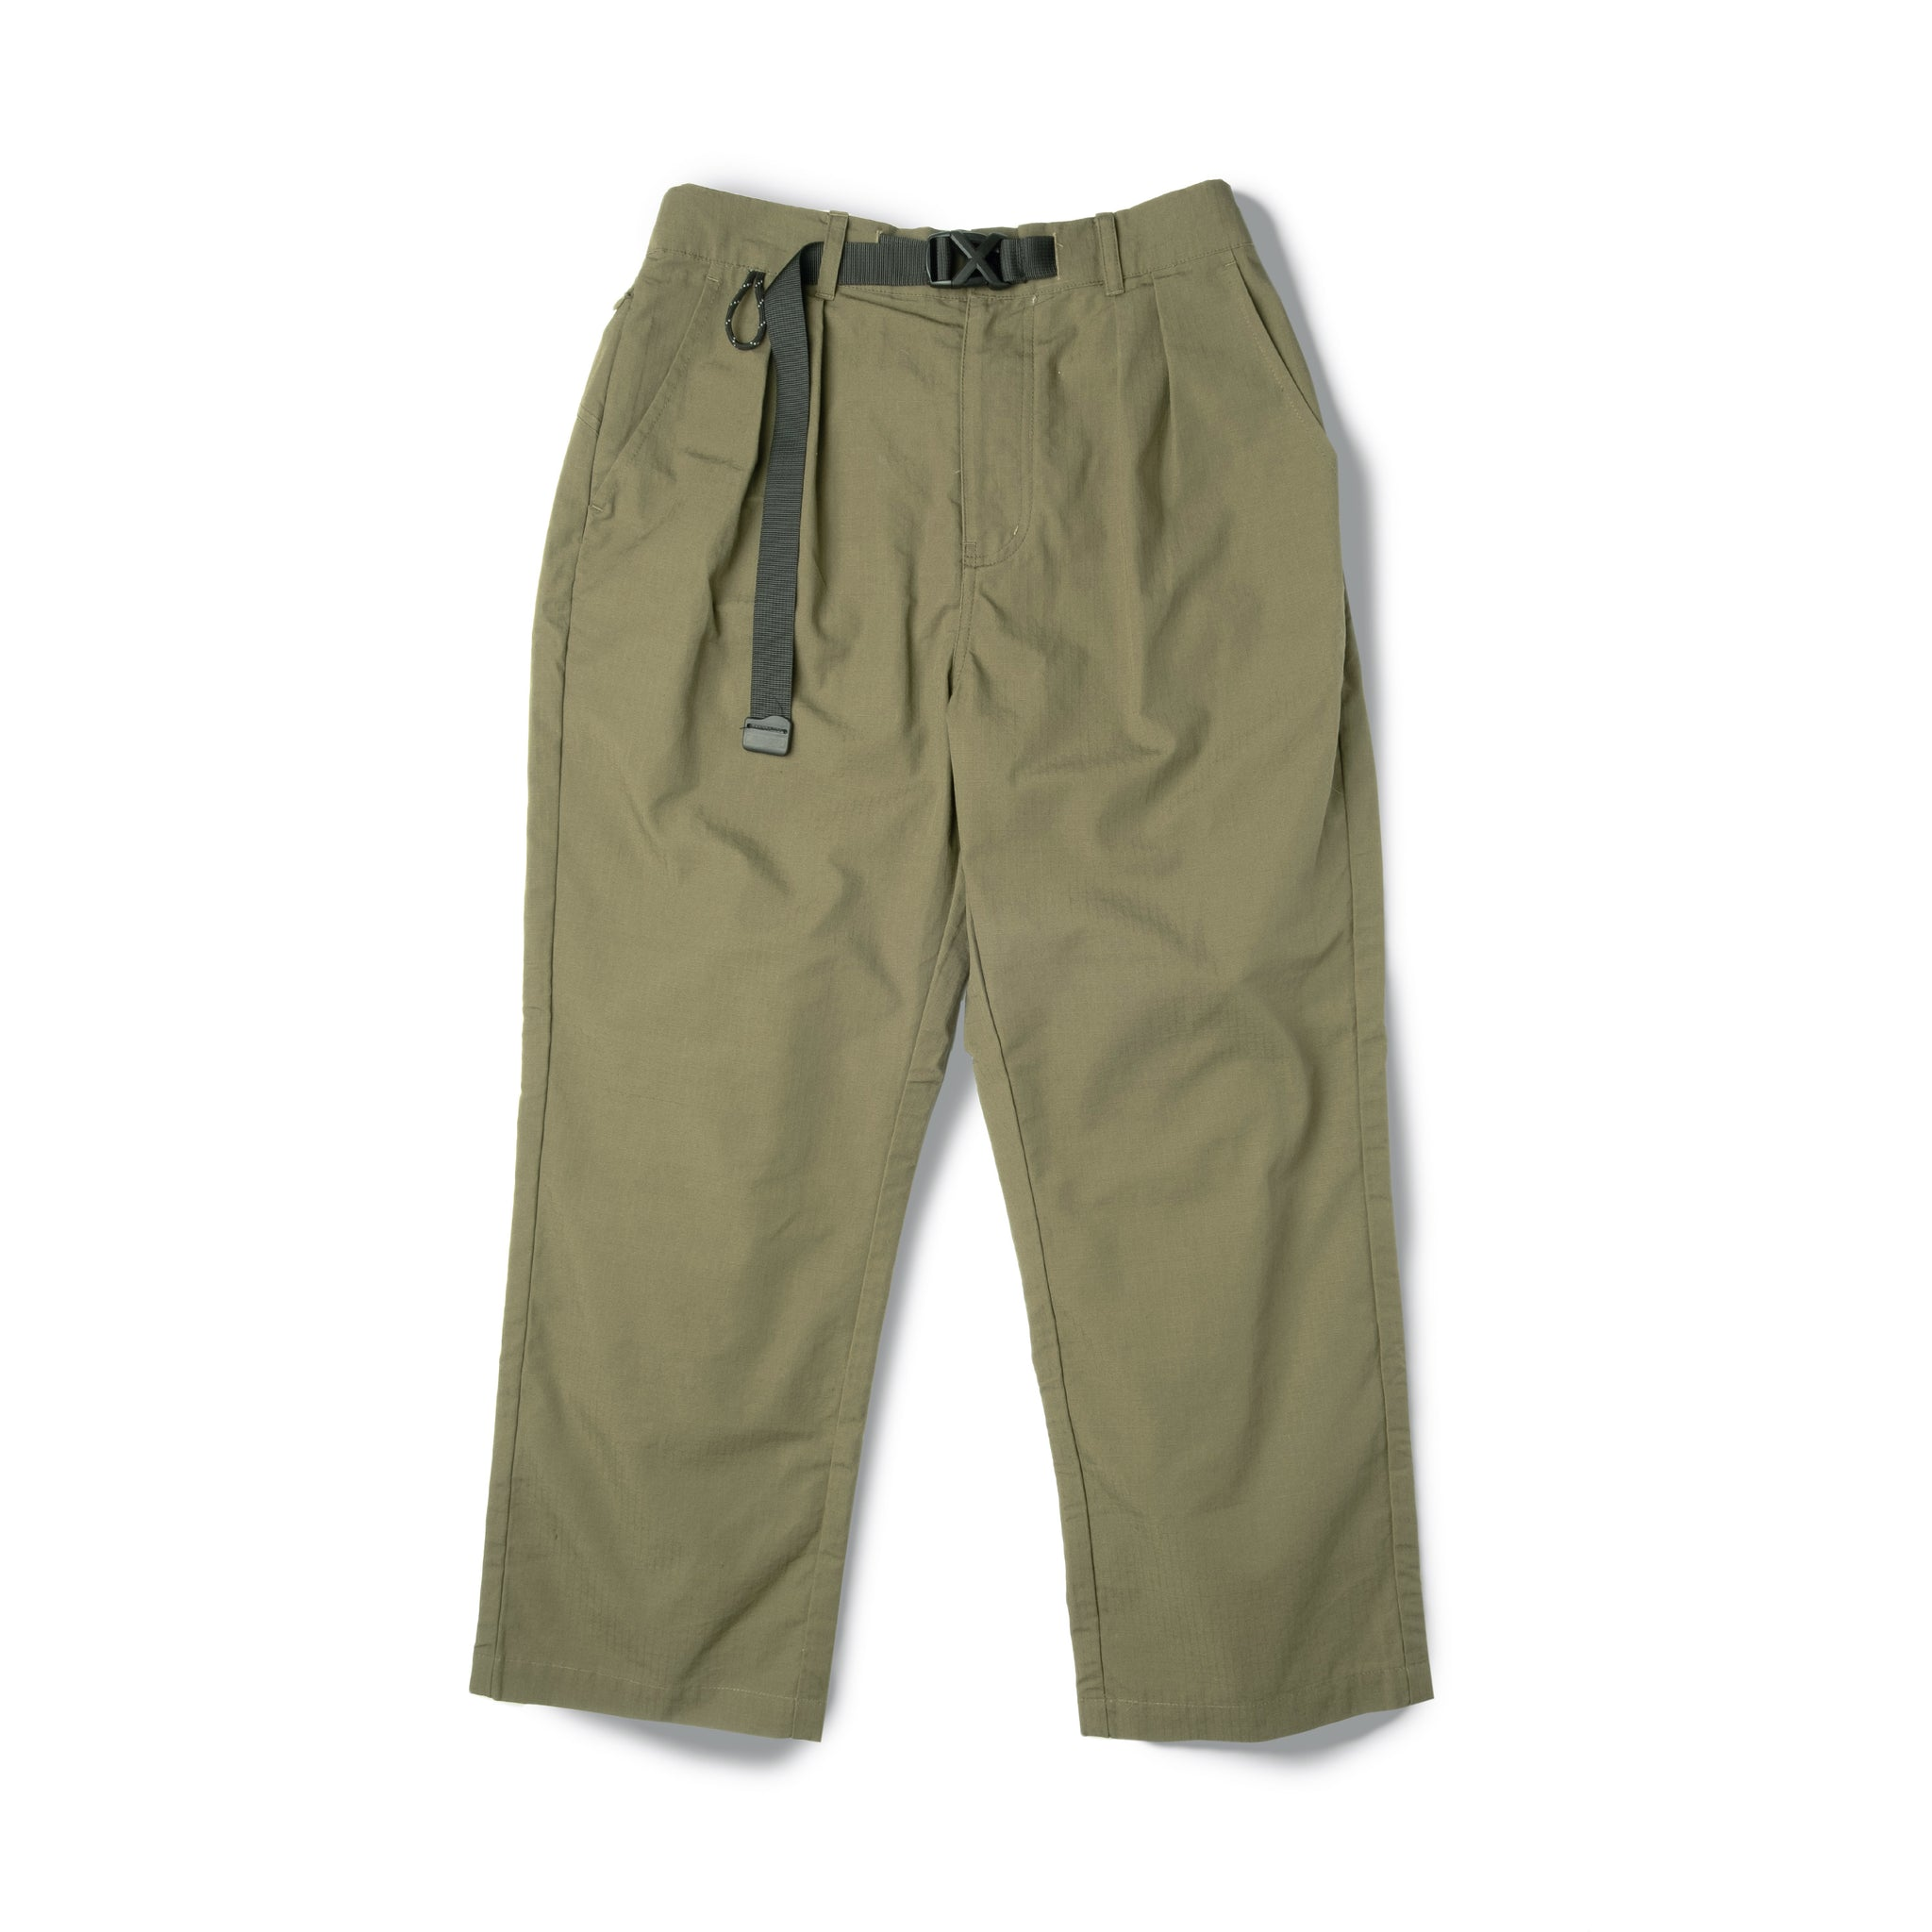 Lazy 7 Pockets Pants